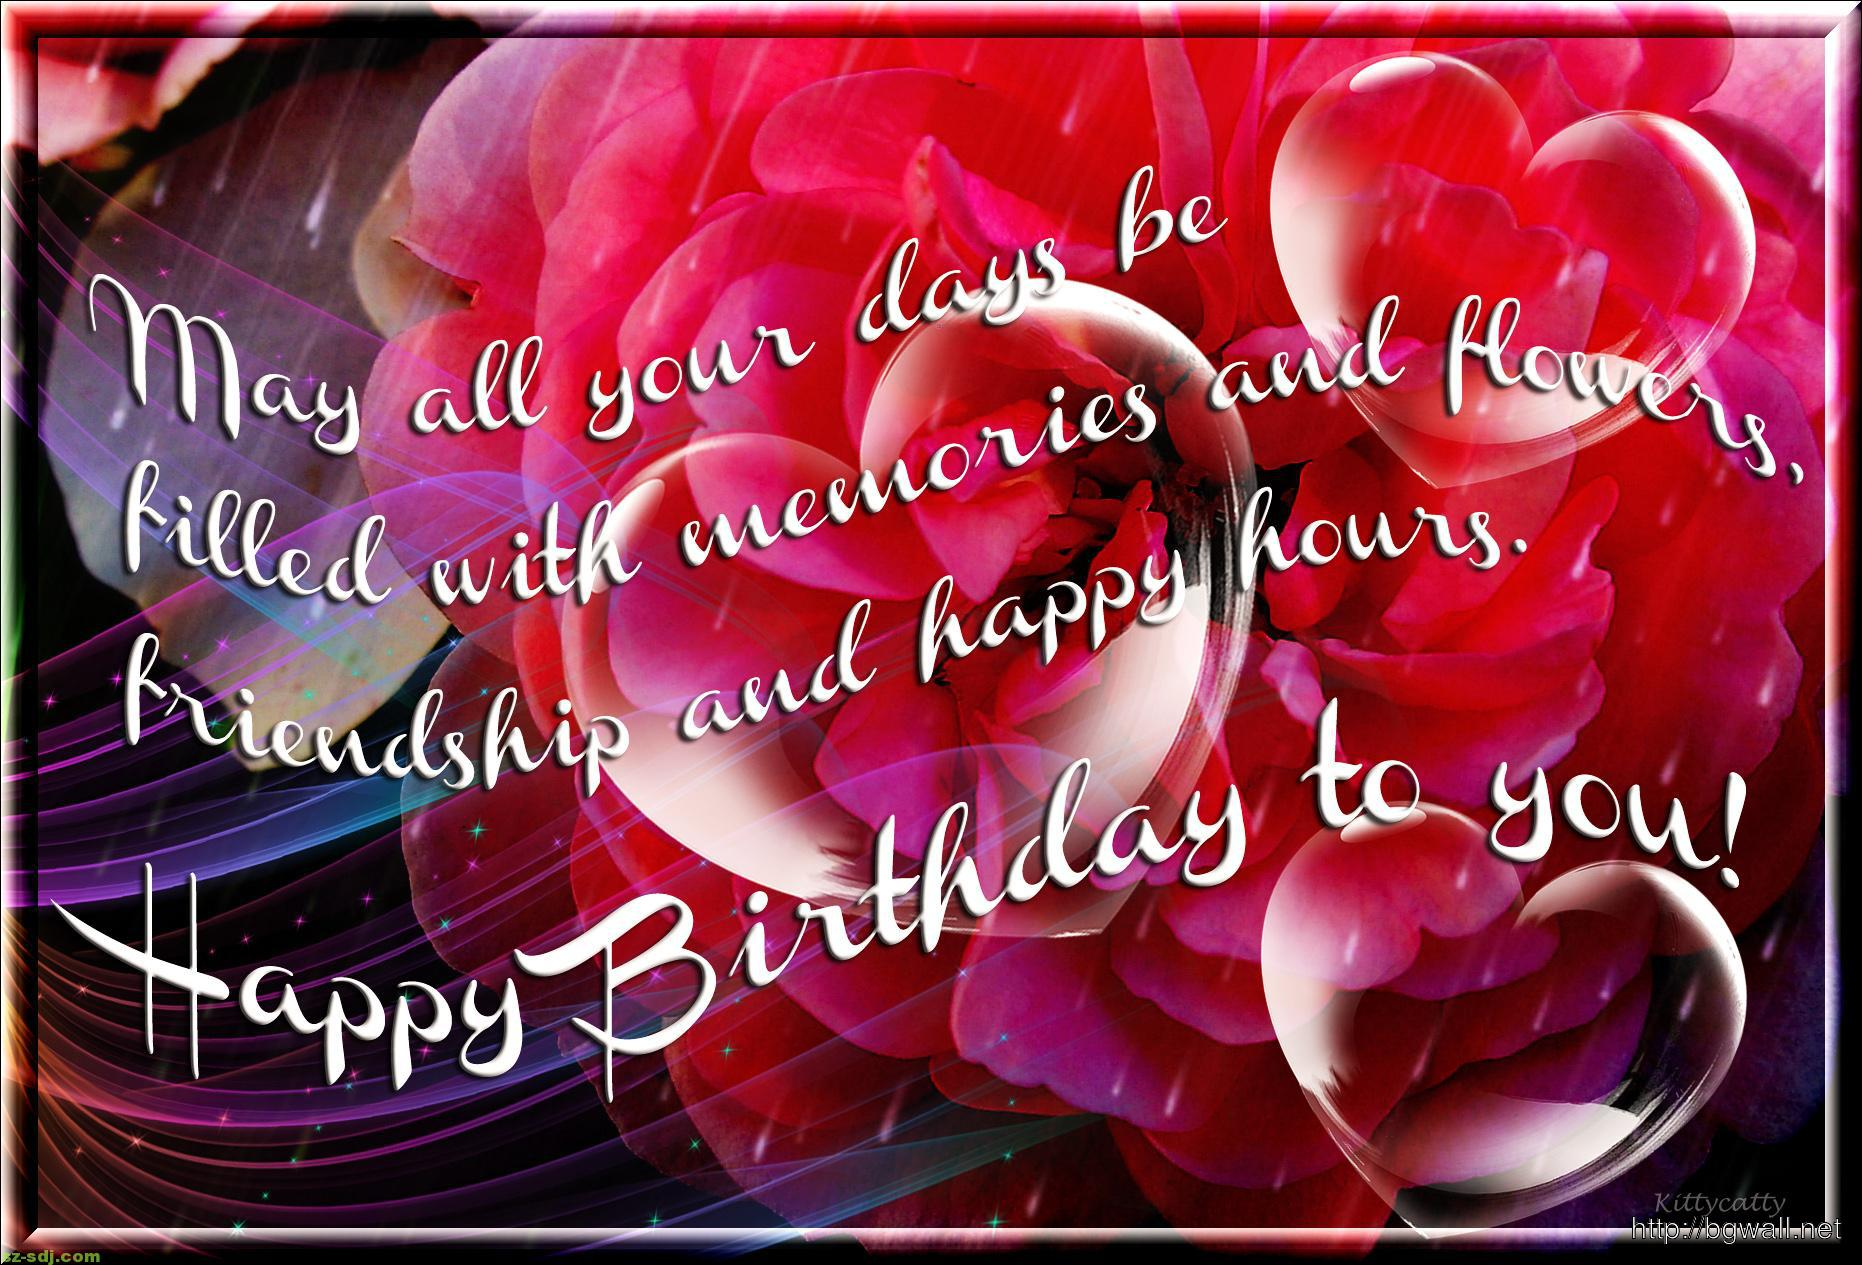 happy birthday quotes wallpaper free download ; happy-birthday-quotes-wallpaper-free